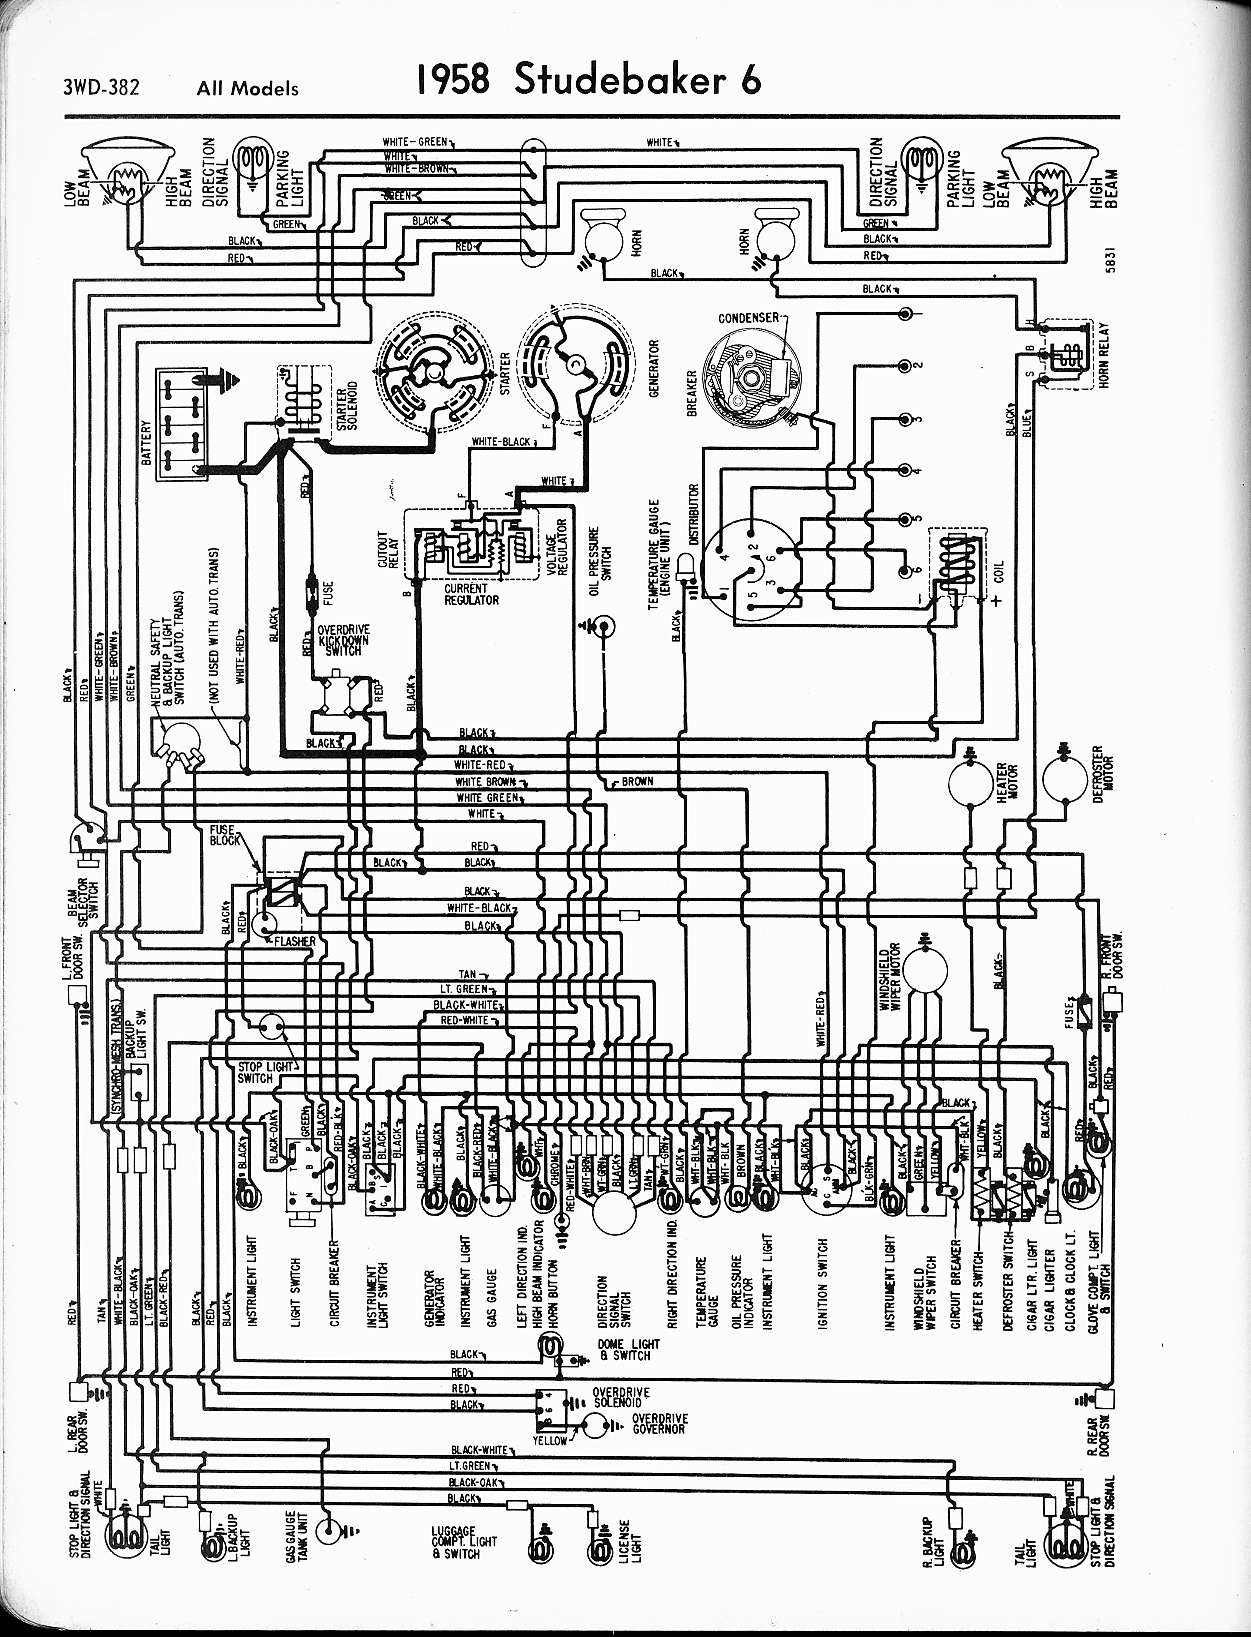 hight resolution of wiring diagram for 1958 studebaker and packard clipper schema 1950 packard wiring diagram